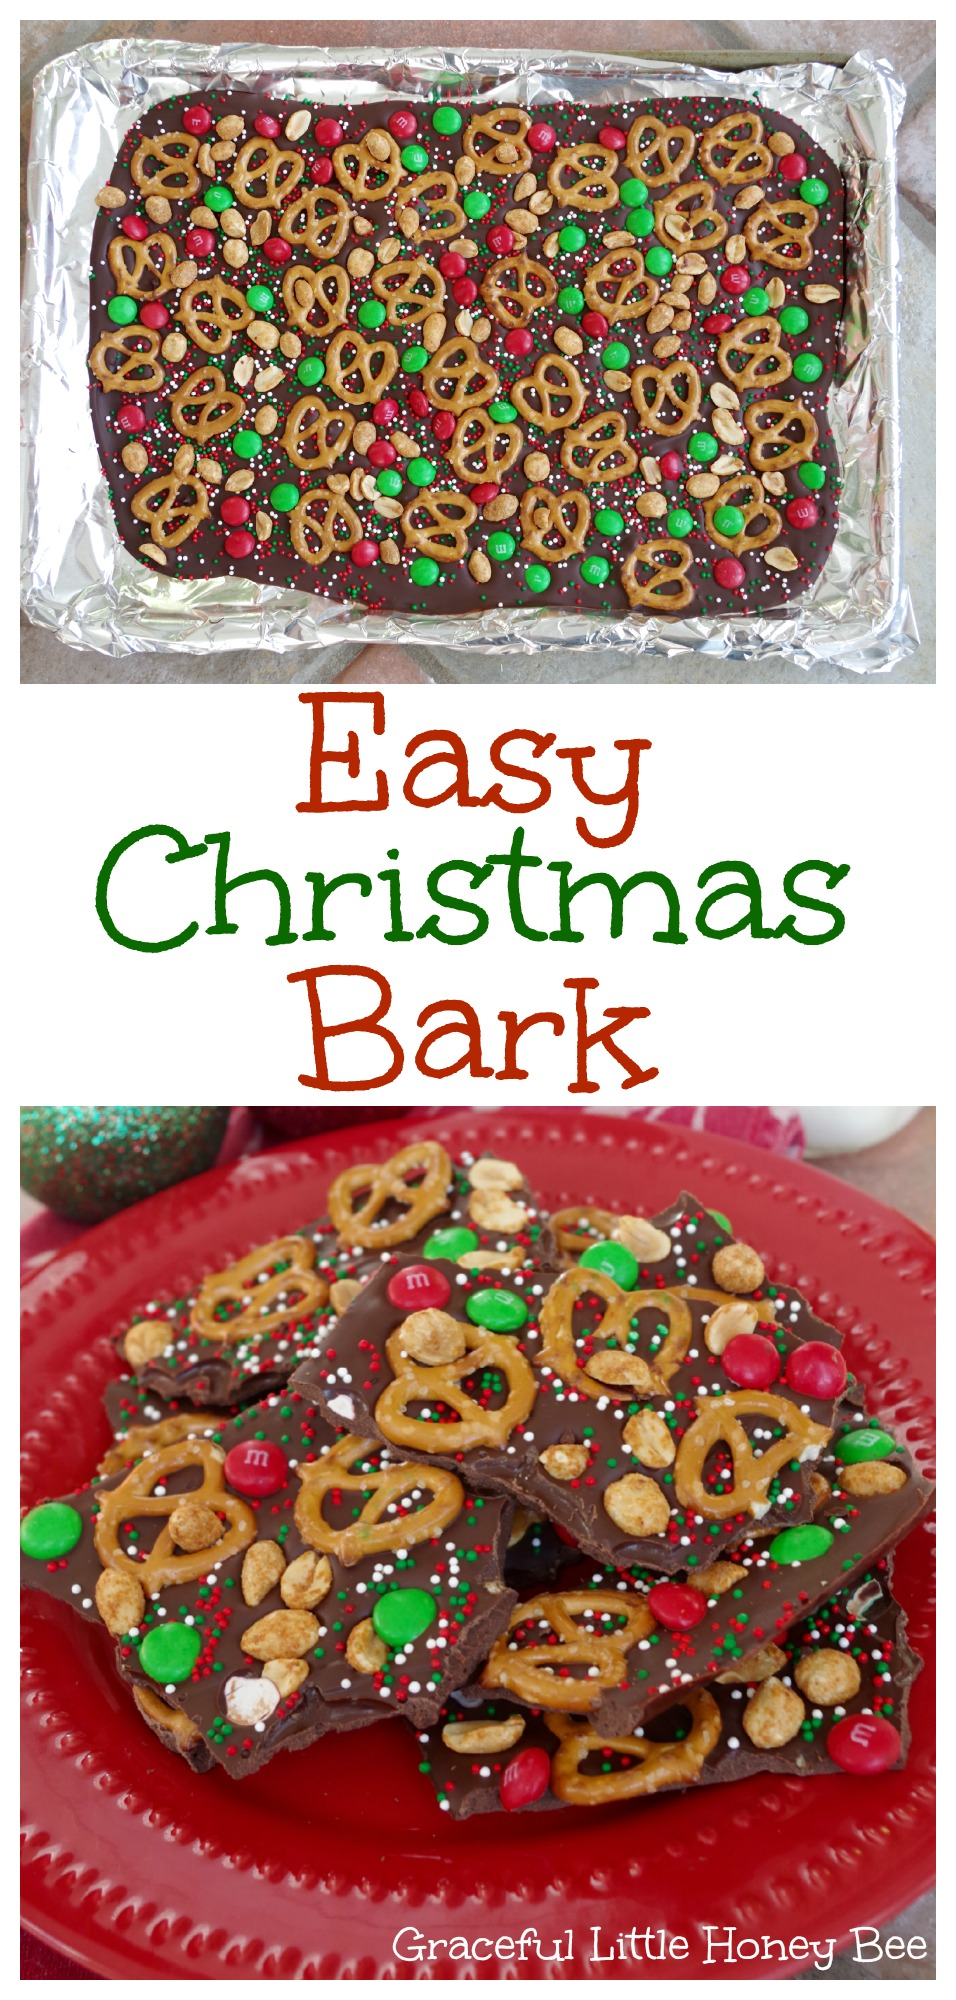 Easy christmas bark graceful little honey bee for Easy holiday baking recipes for gifts